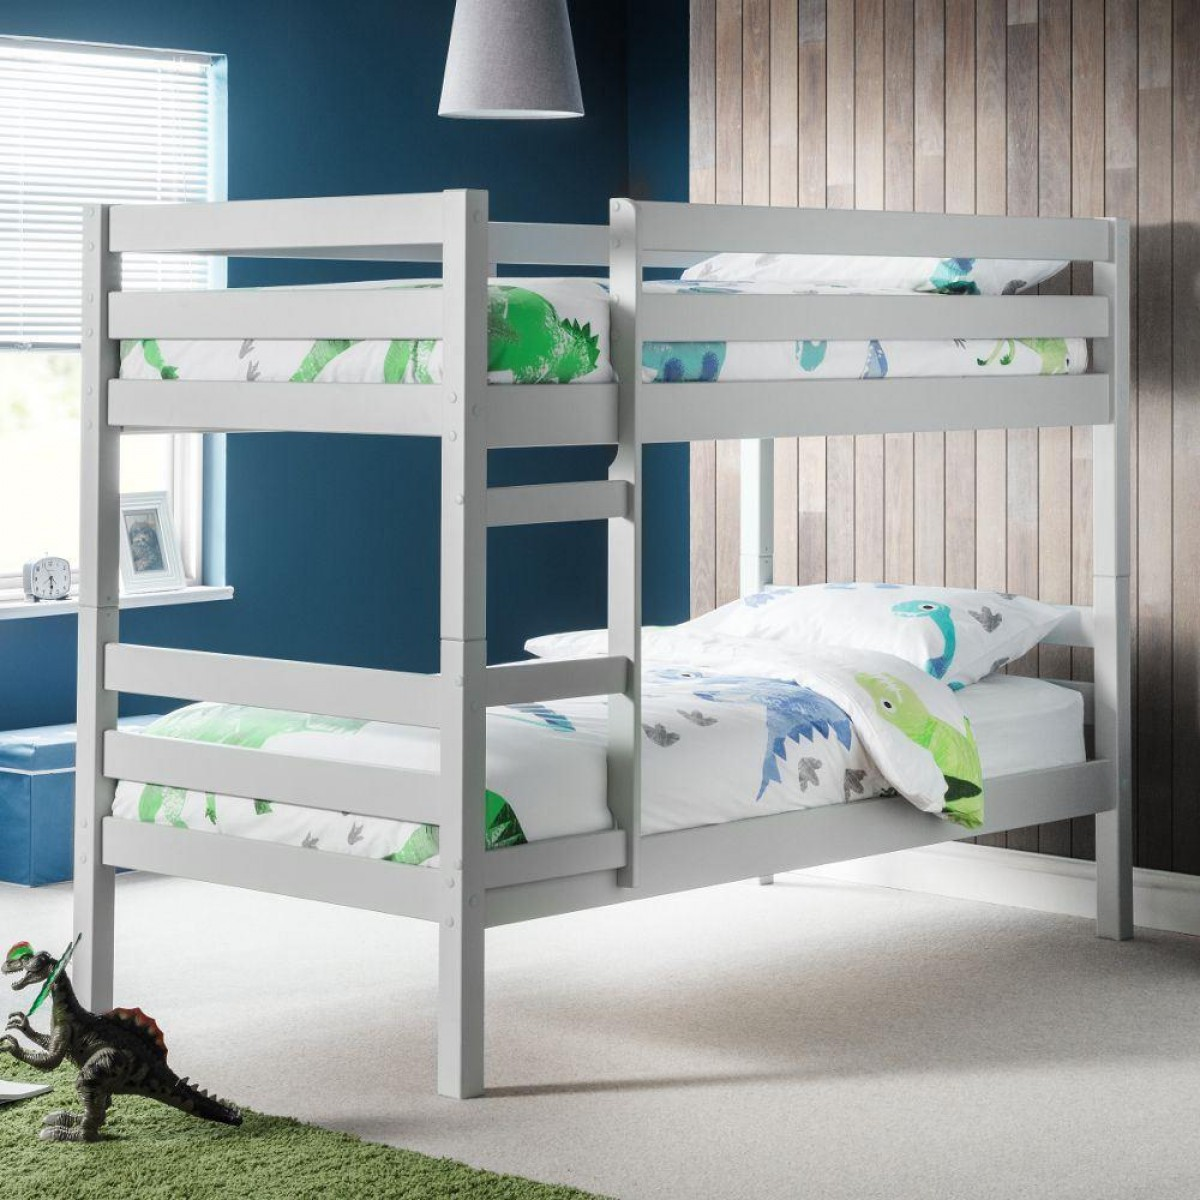 Super Camden Dove Grey Wooden Bunk Bed Complete Home Design Collection Barbaintelli Responsecom